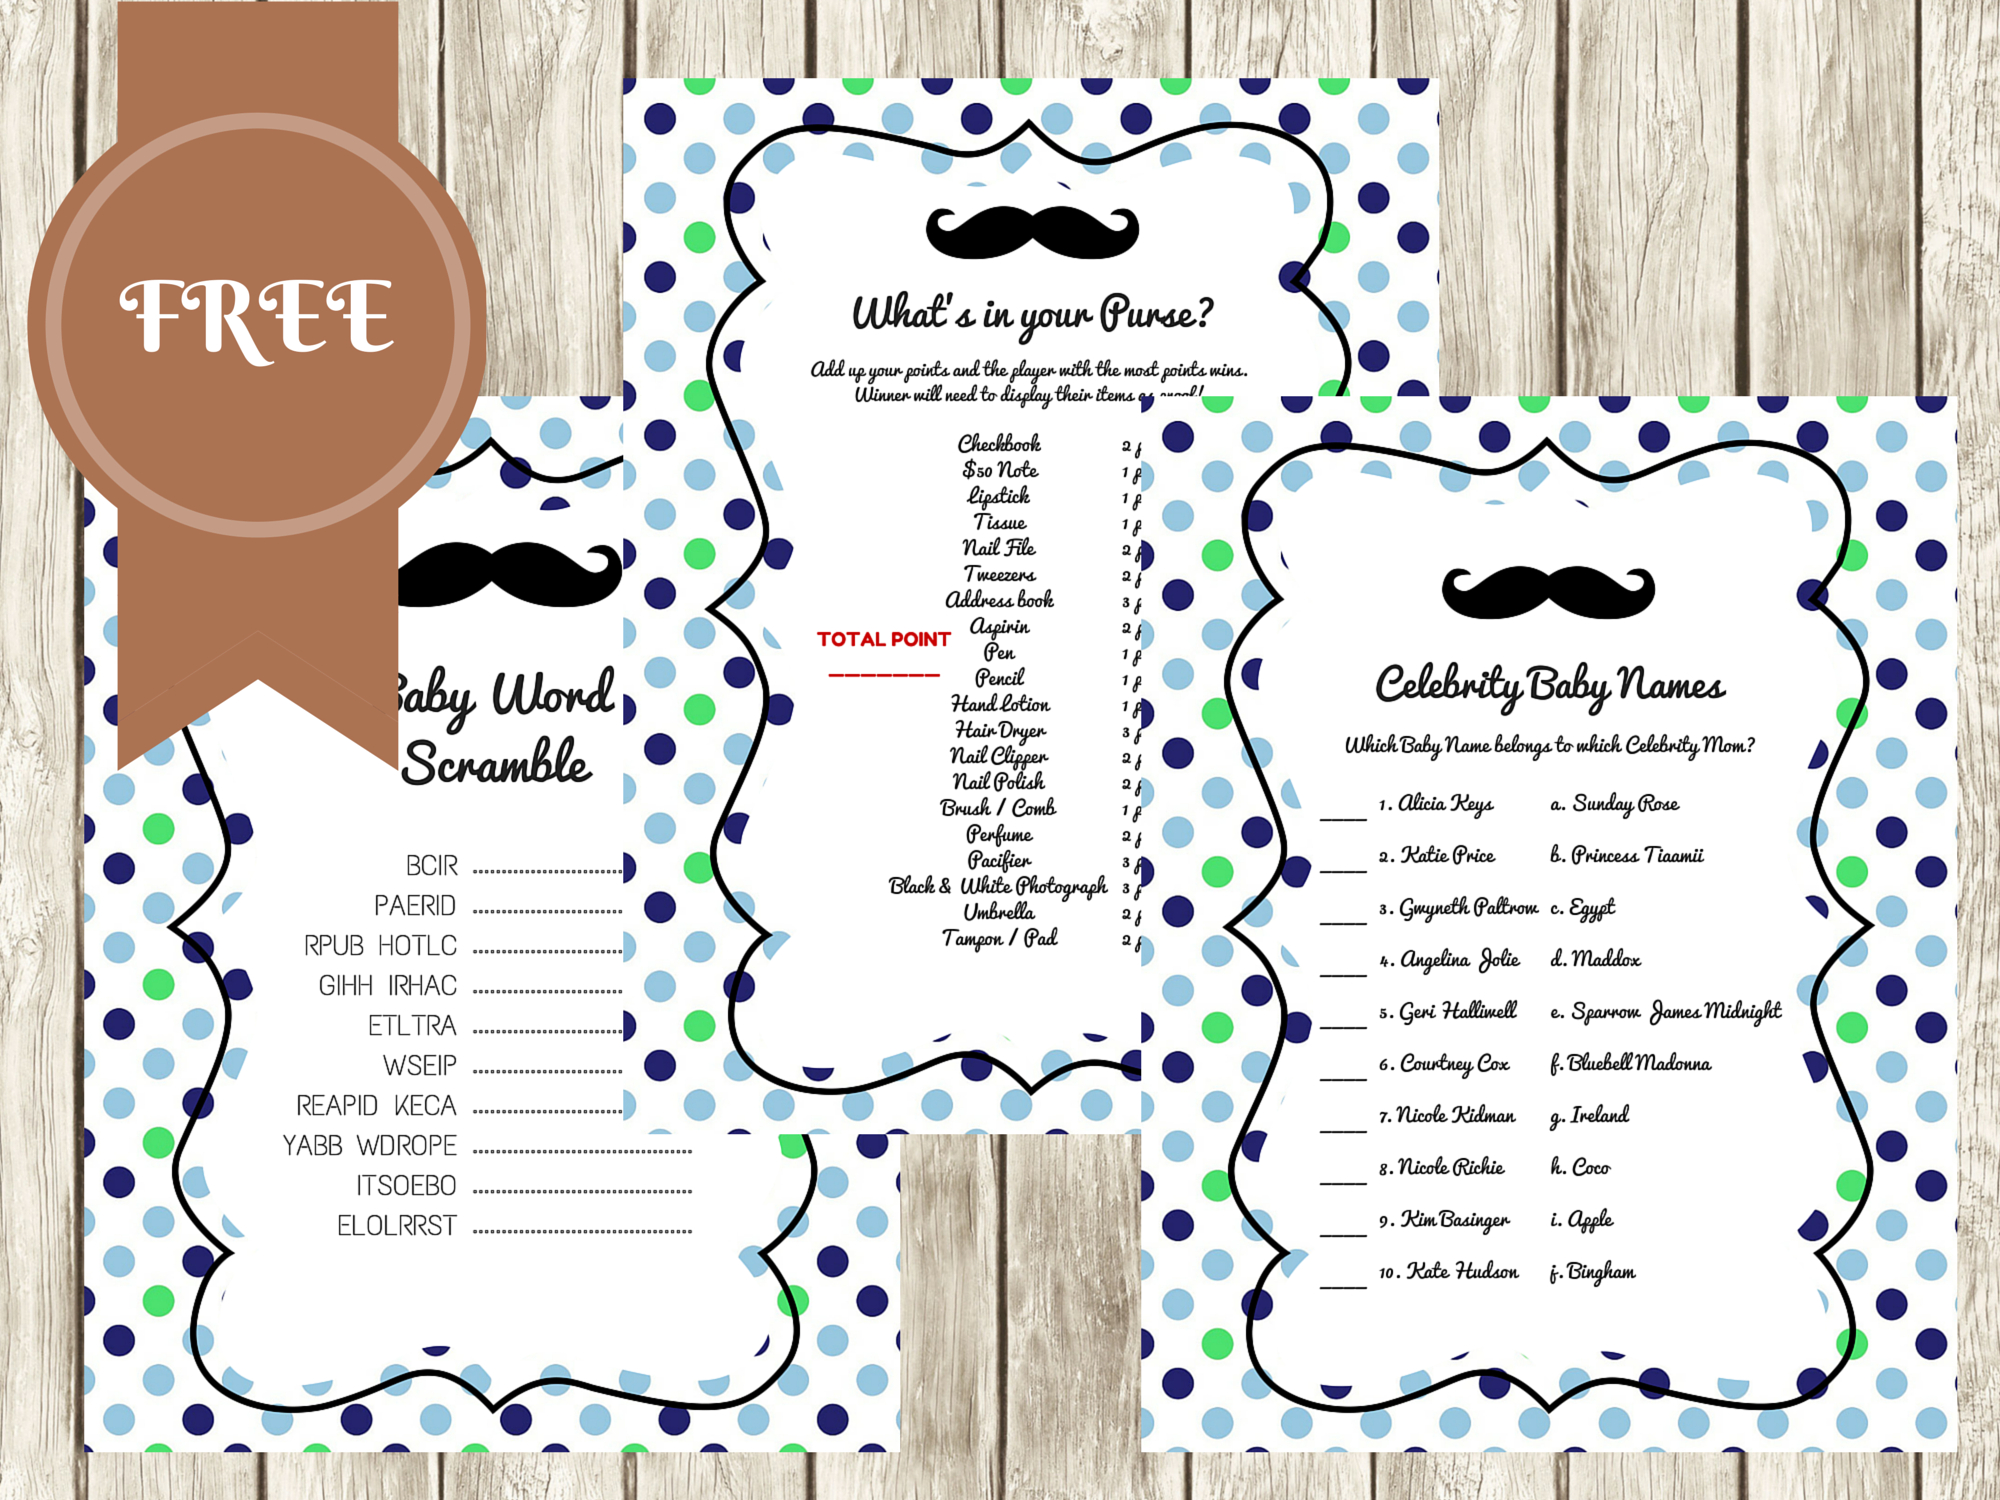 Free Mustache Baby Shower Games - Baby Shower Ideas - Themes - Games - Name That Mustache Game Printable Free